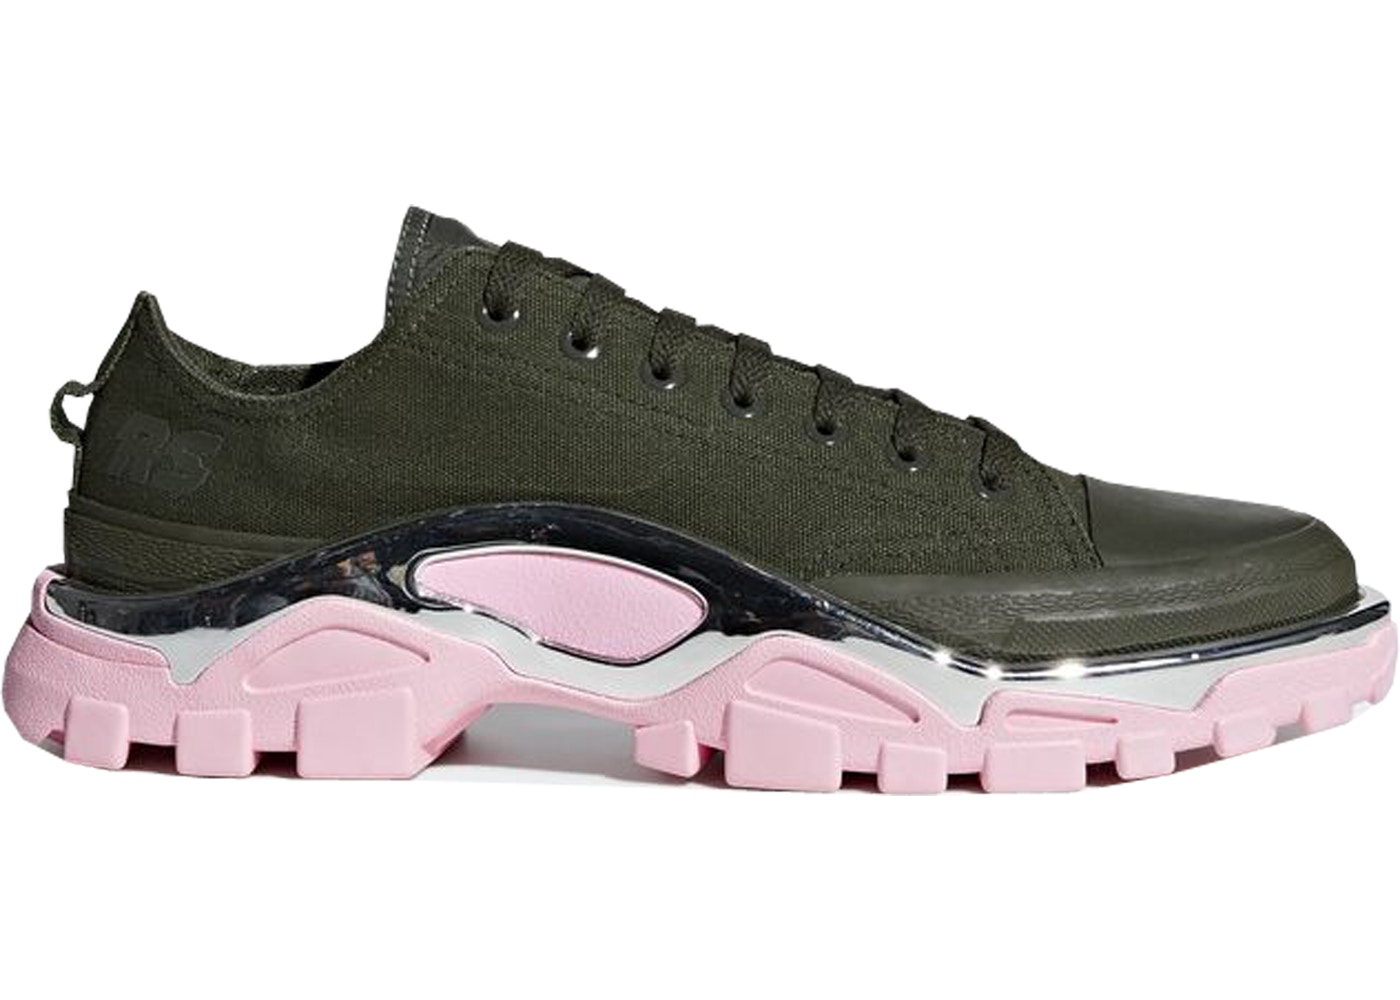 factory authentic 89cbe e6b37 Sell. or Ask. Size 13. View All Bids. adidas Detroit Runner Raf Simons  Night Cargo